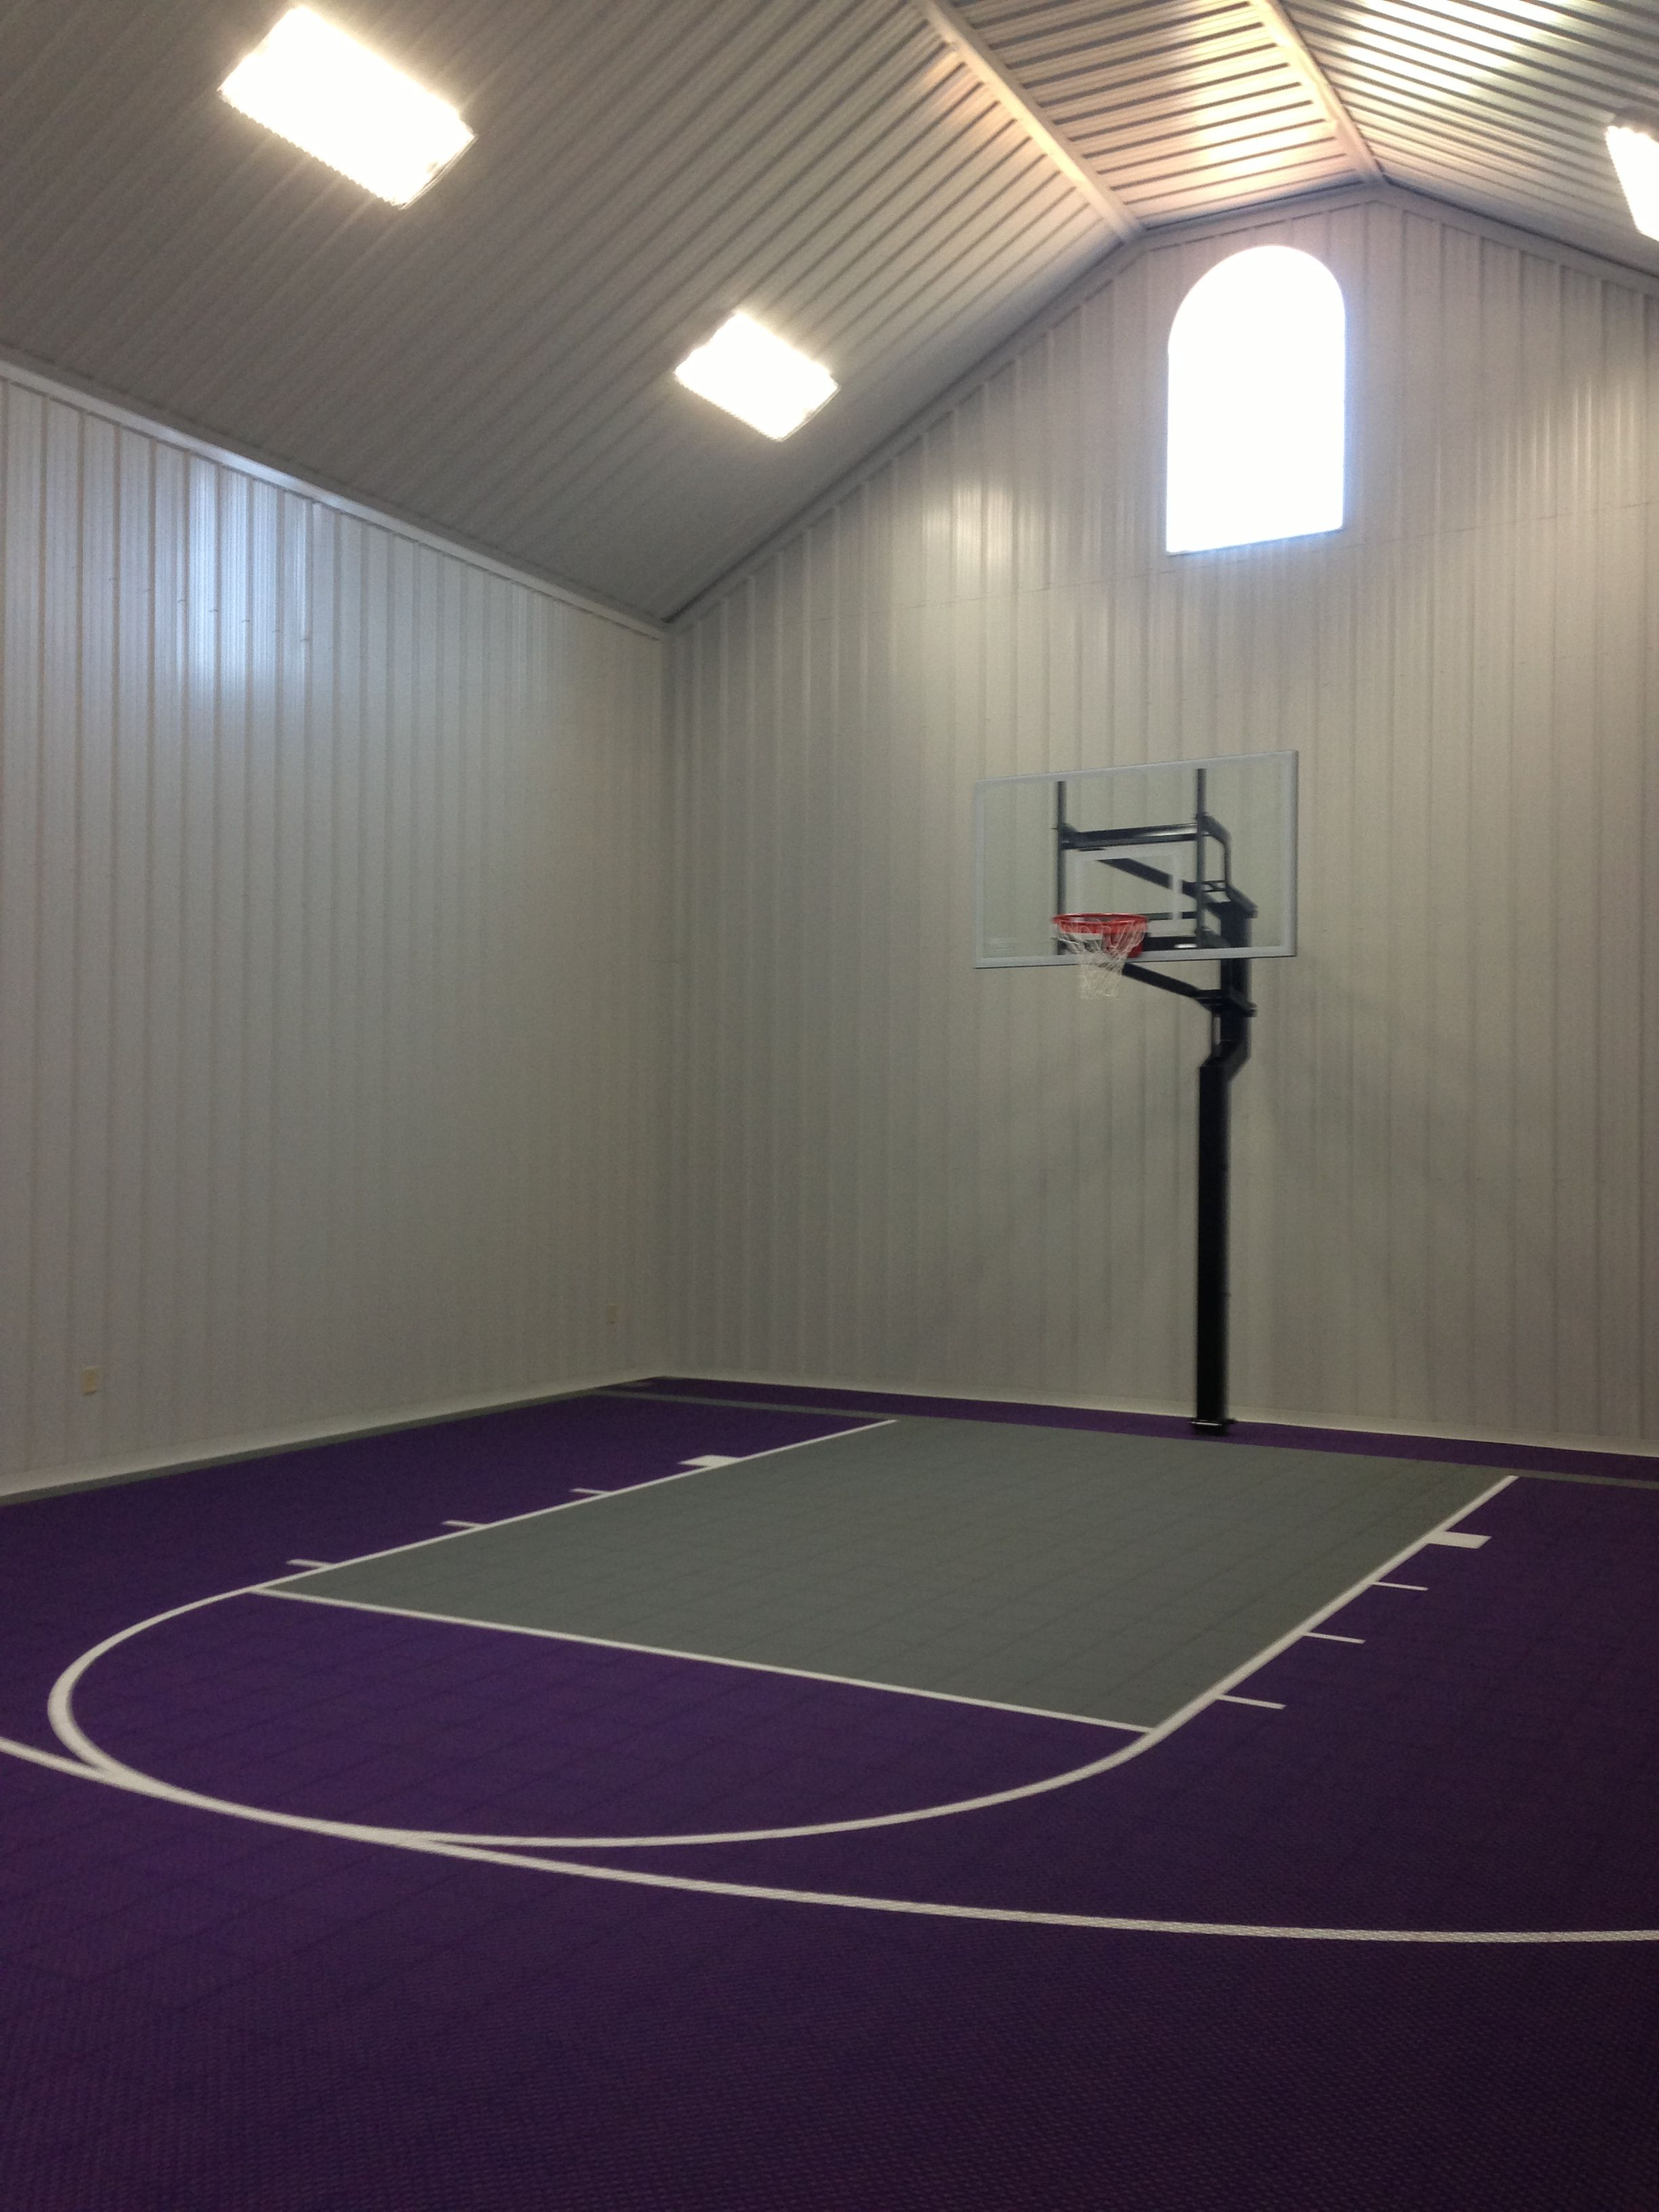 Pin By Southeasterninsulation Com On Open Cell Foam Home Basketball Court Indoor Basketball Court Basketball Court